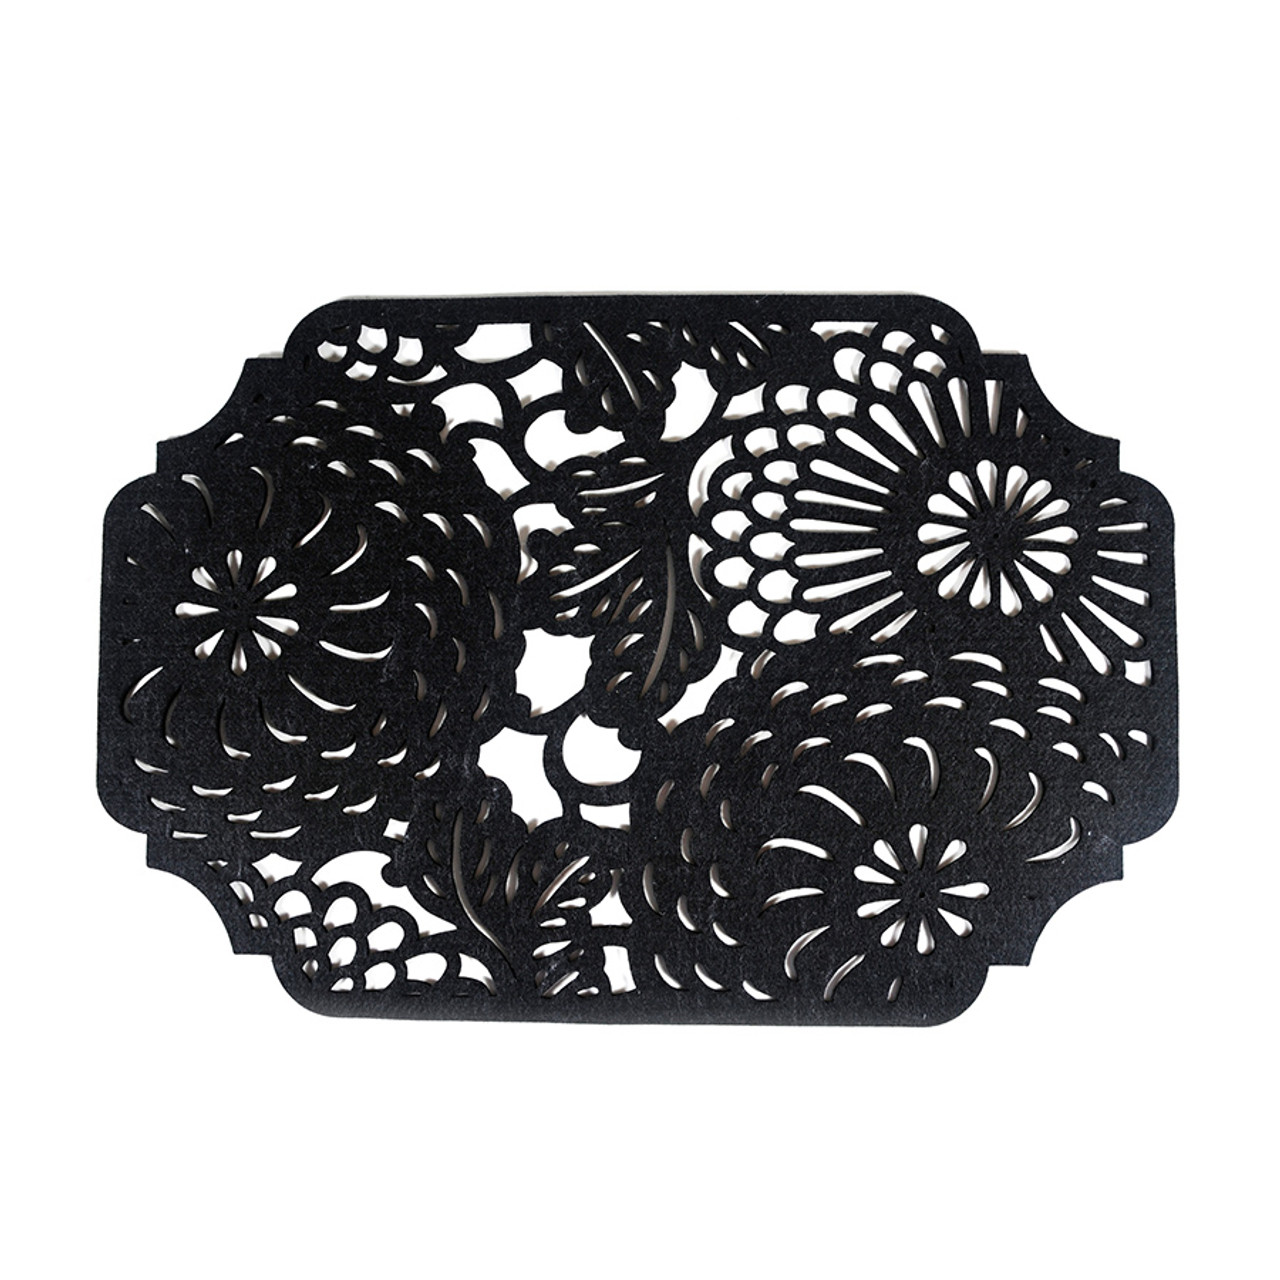 Floral Placemat - Rectangular Black 4 piece set